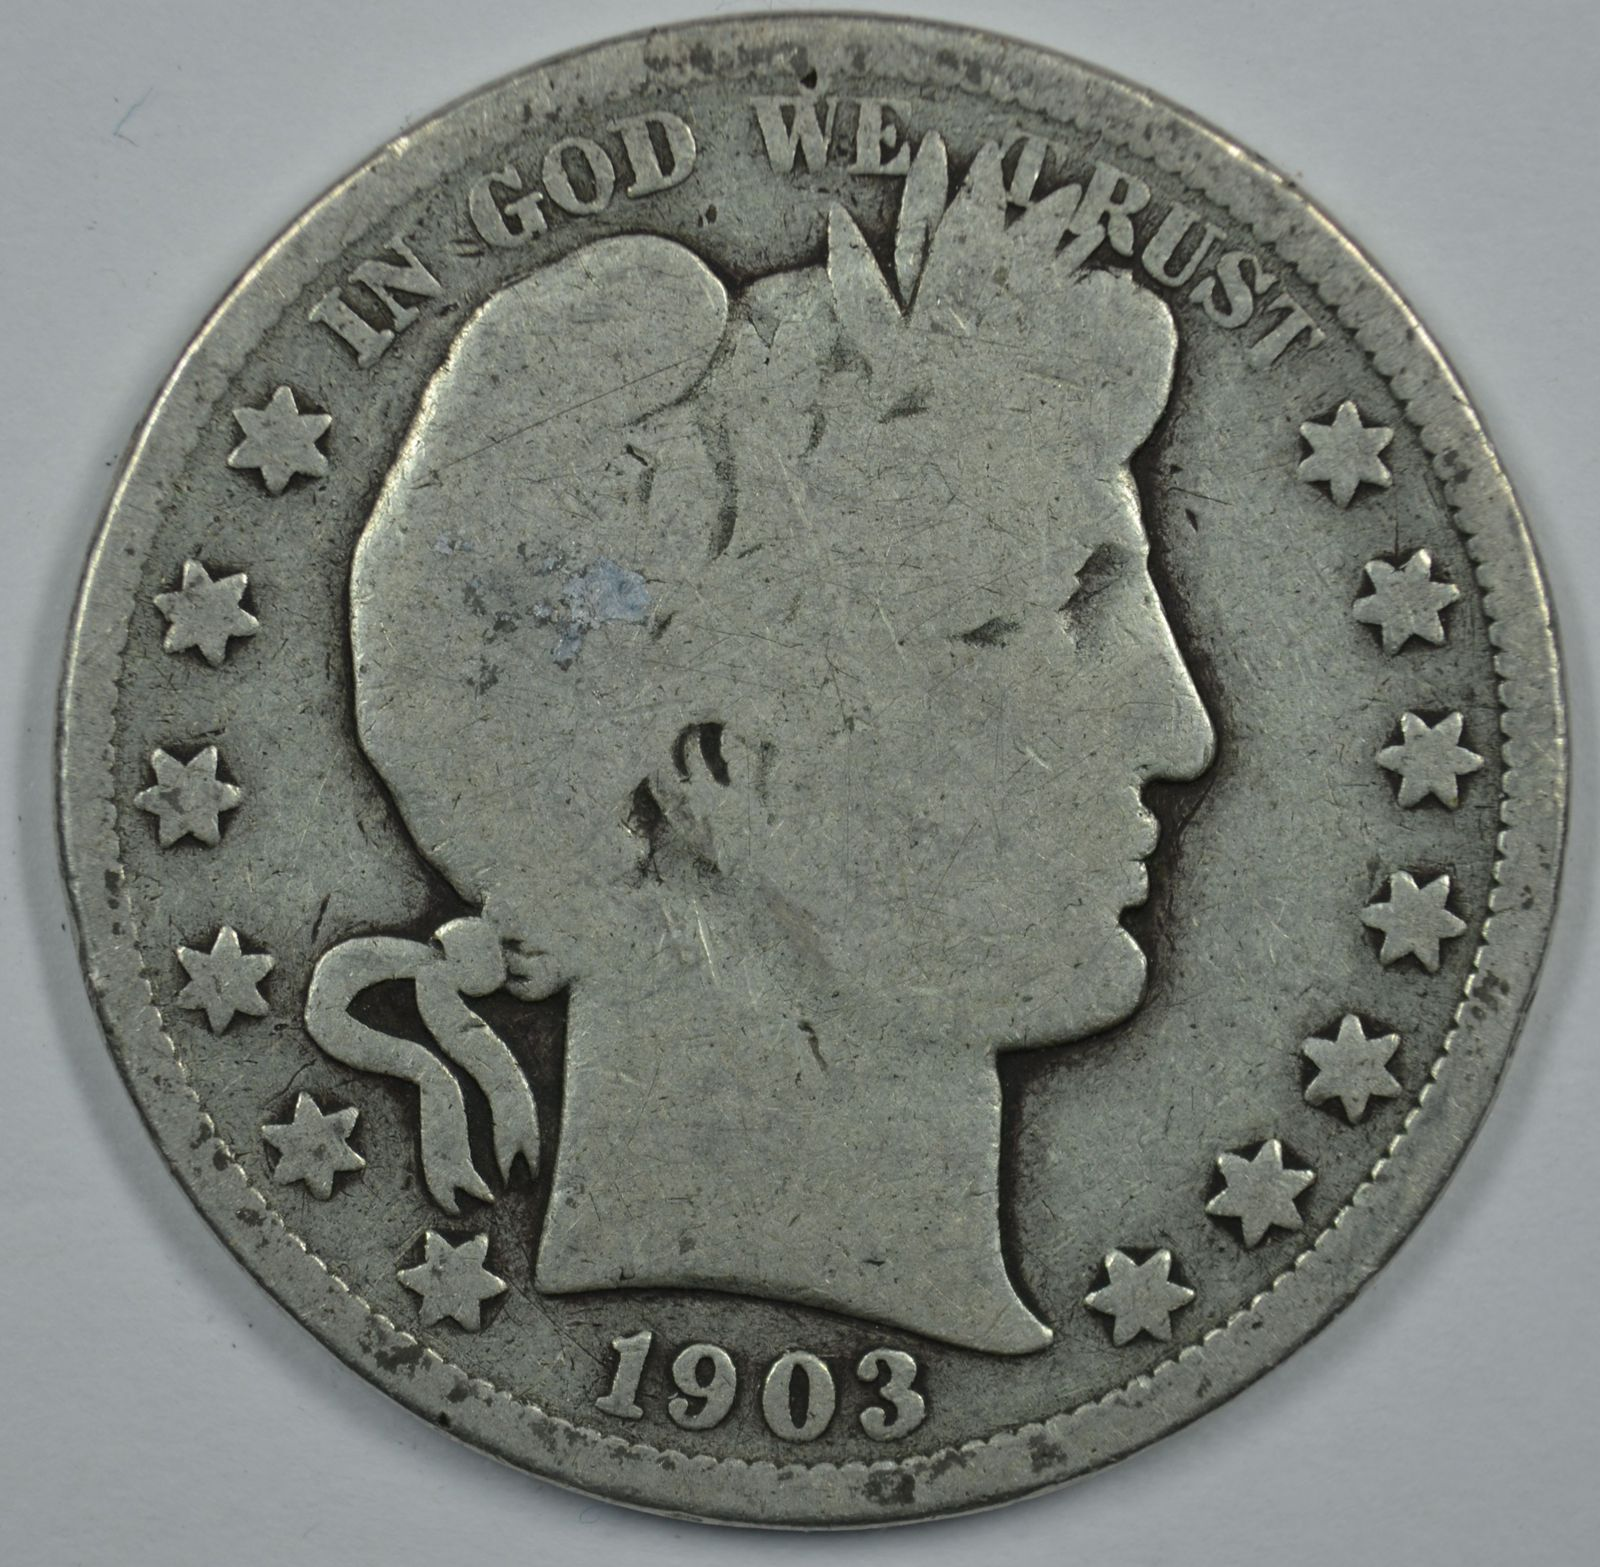 Primary image for 1903 P Barber circulated silver half